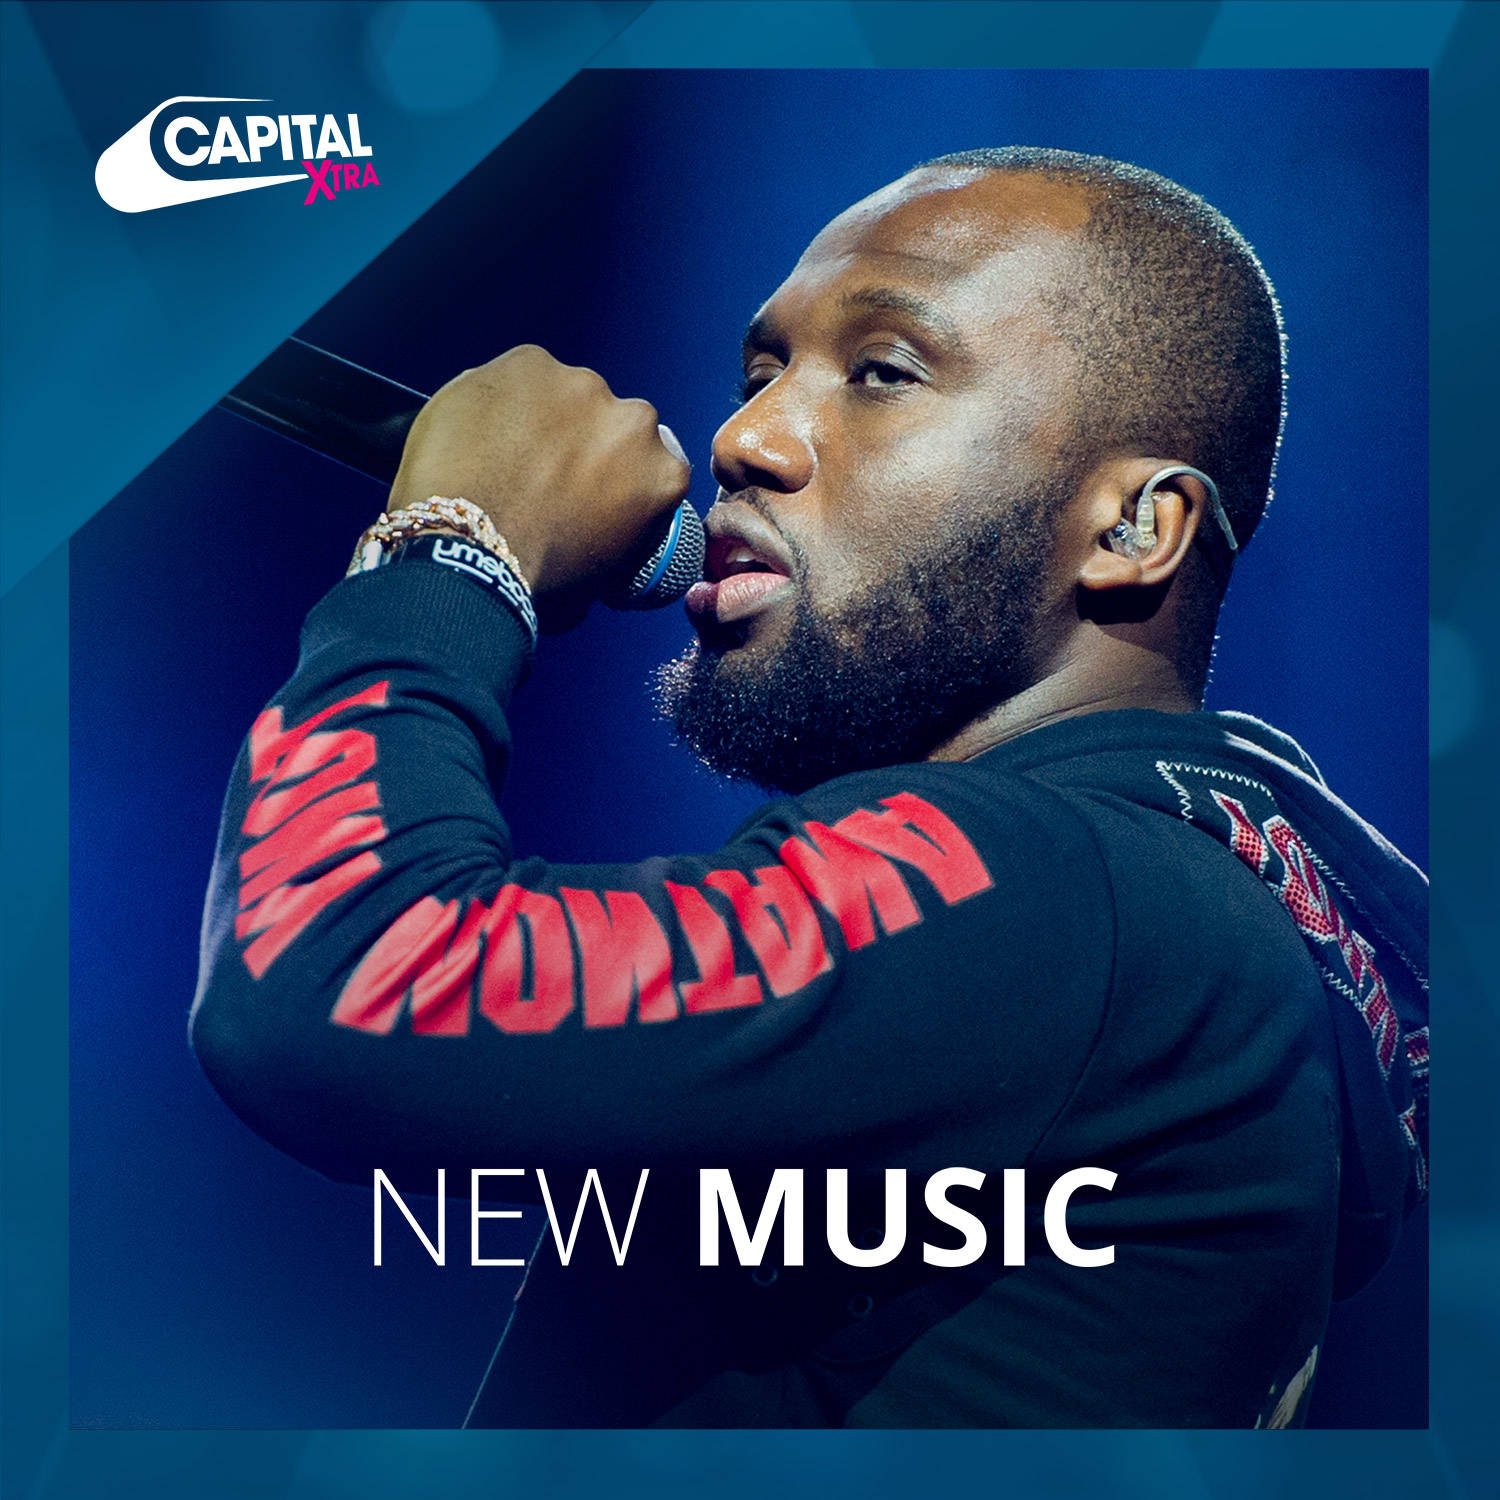 Capital XTRA New Music image